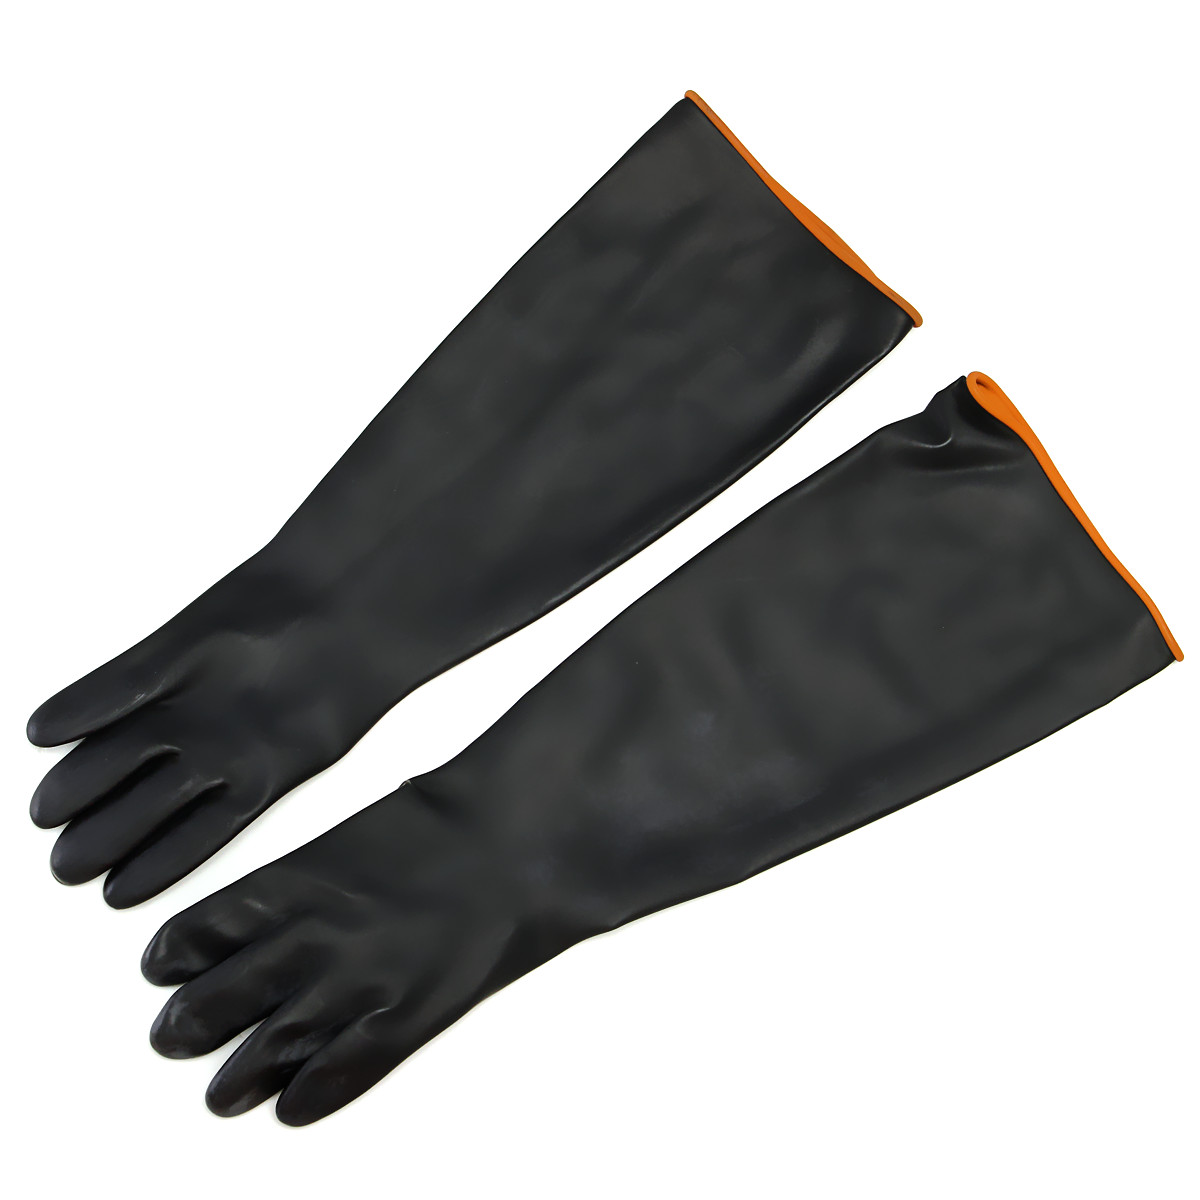 FGHGF Latex Industrial Rubber Gloves Acid and Alkali Resistant Anti-corrosion Black Workplace Safety Protective Glove Black 100% natural latex gloves high quality 40cm lengthened red clean work gloves oil resistant acid and alkali protective gloves